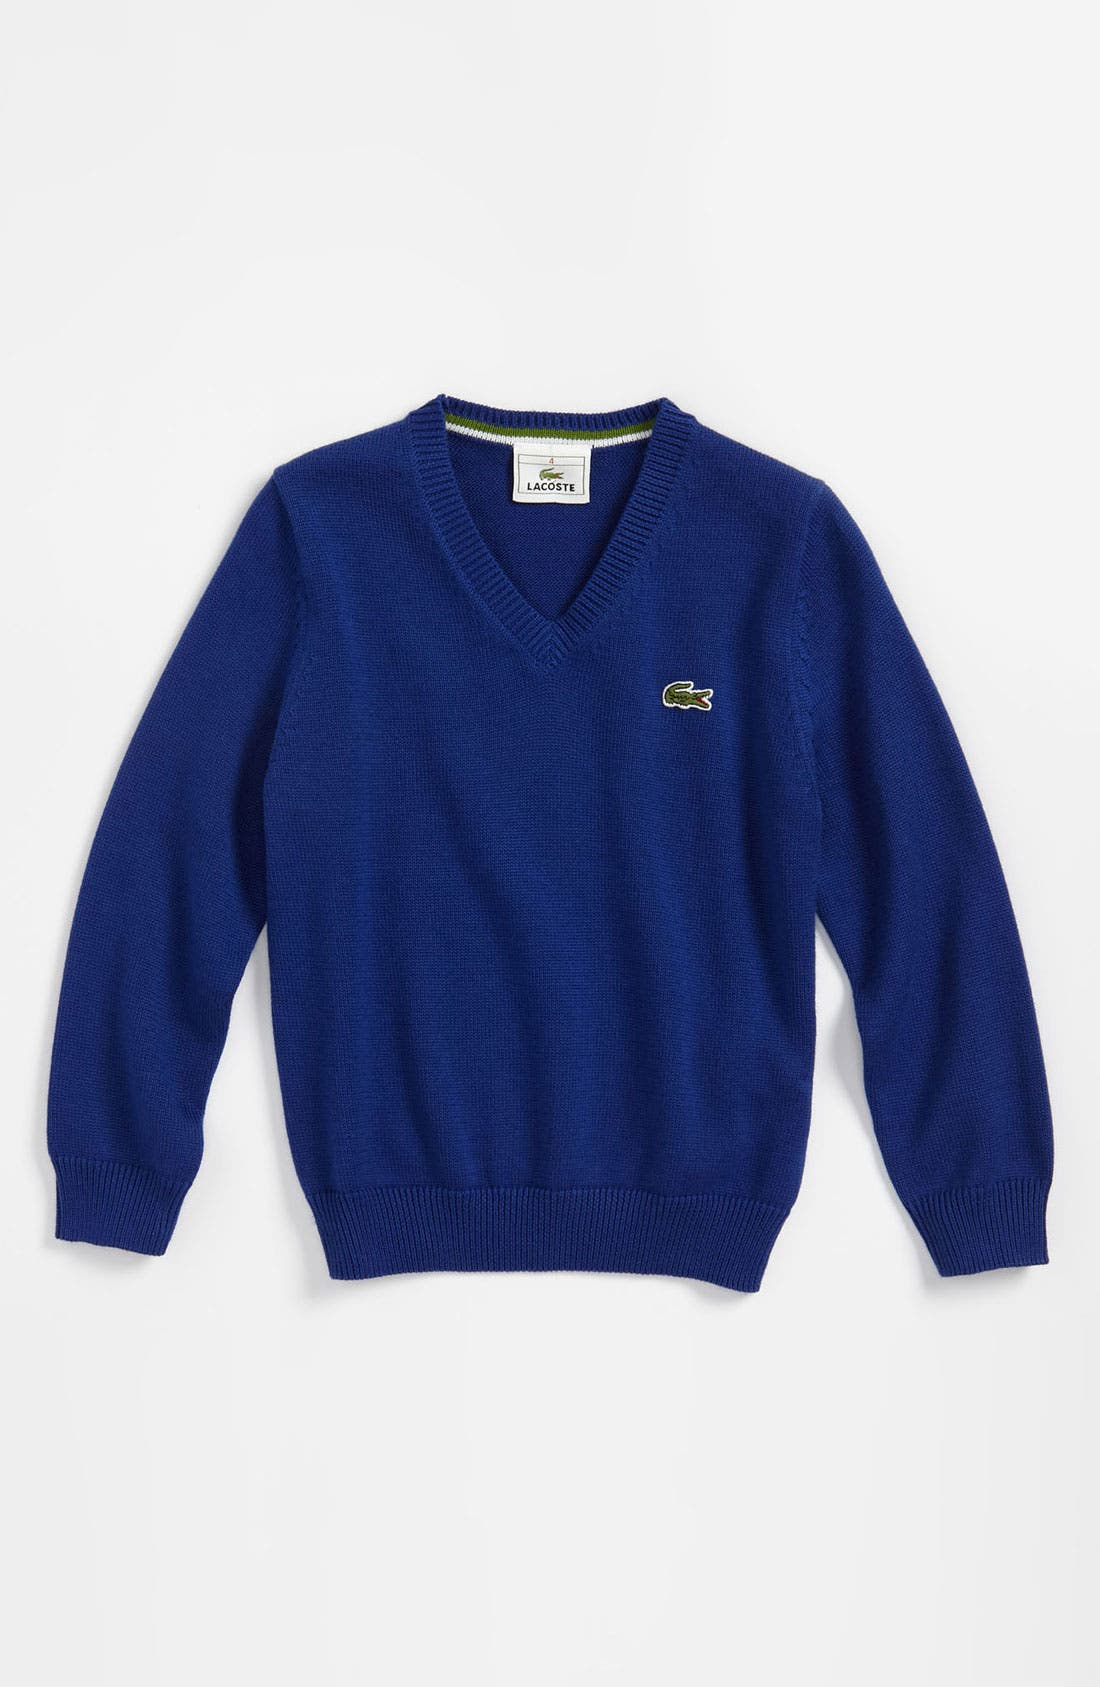 Main Image - Lacoste V-Neck Sweater (Toddler)